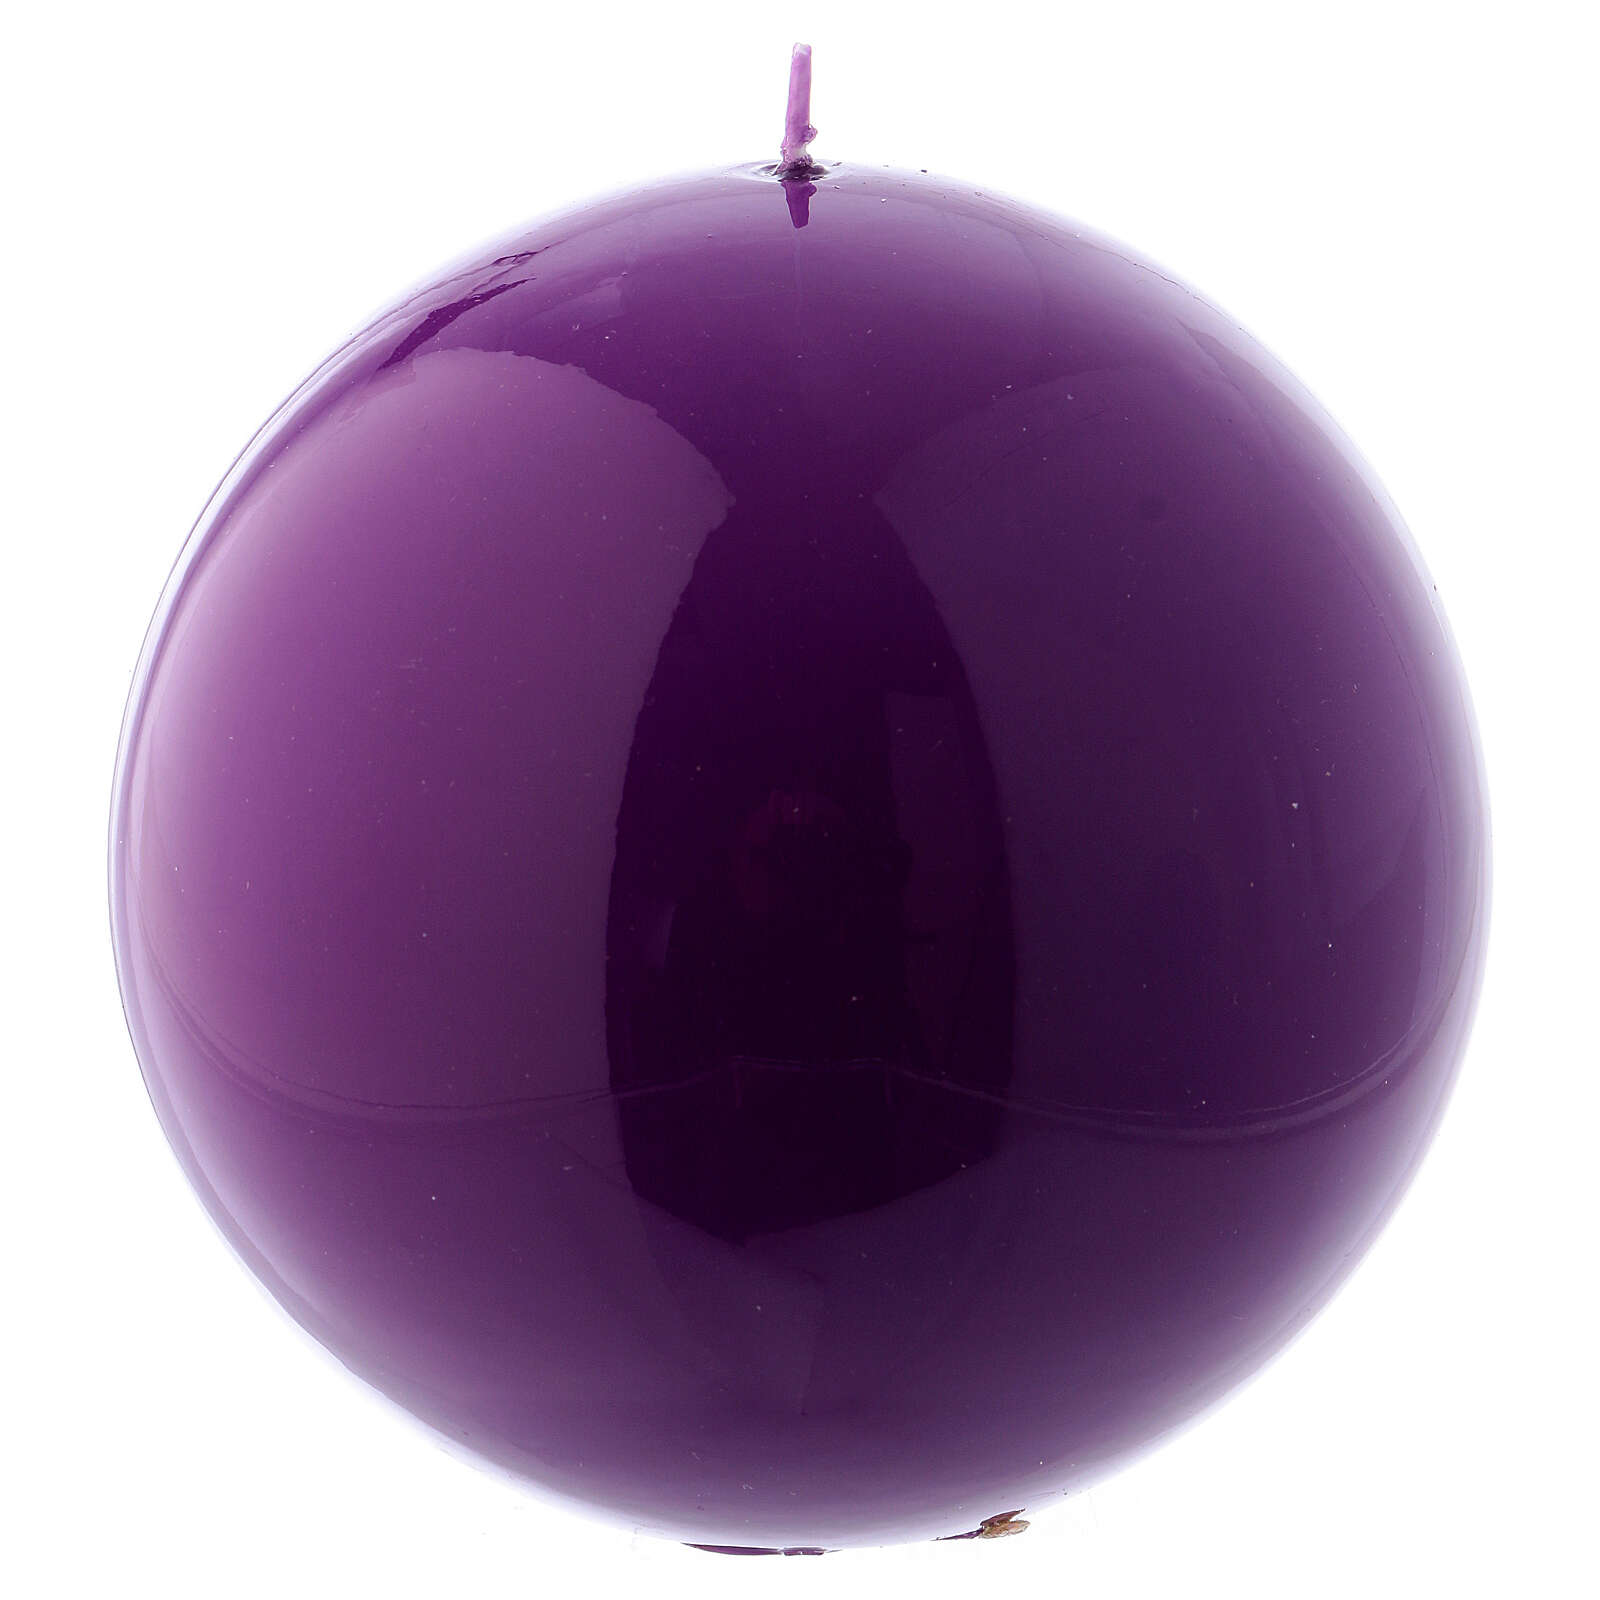 Glossy Sphere Candle Ceralacca, d. 12 cm purple 3